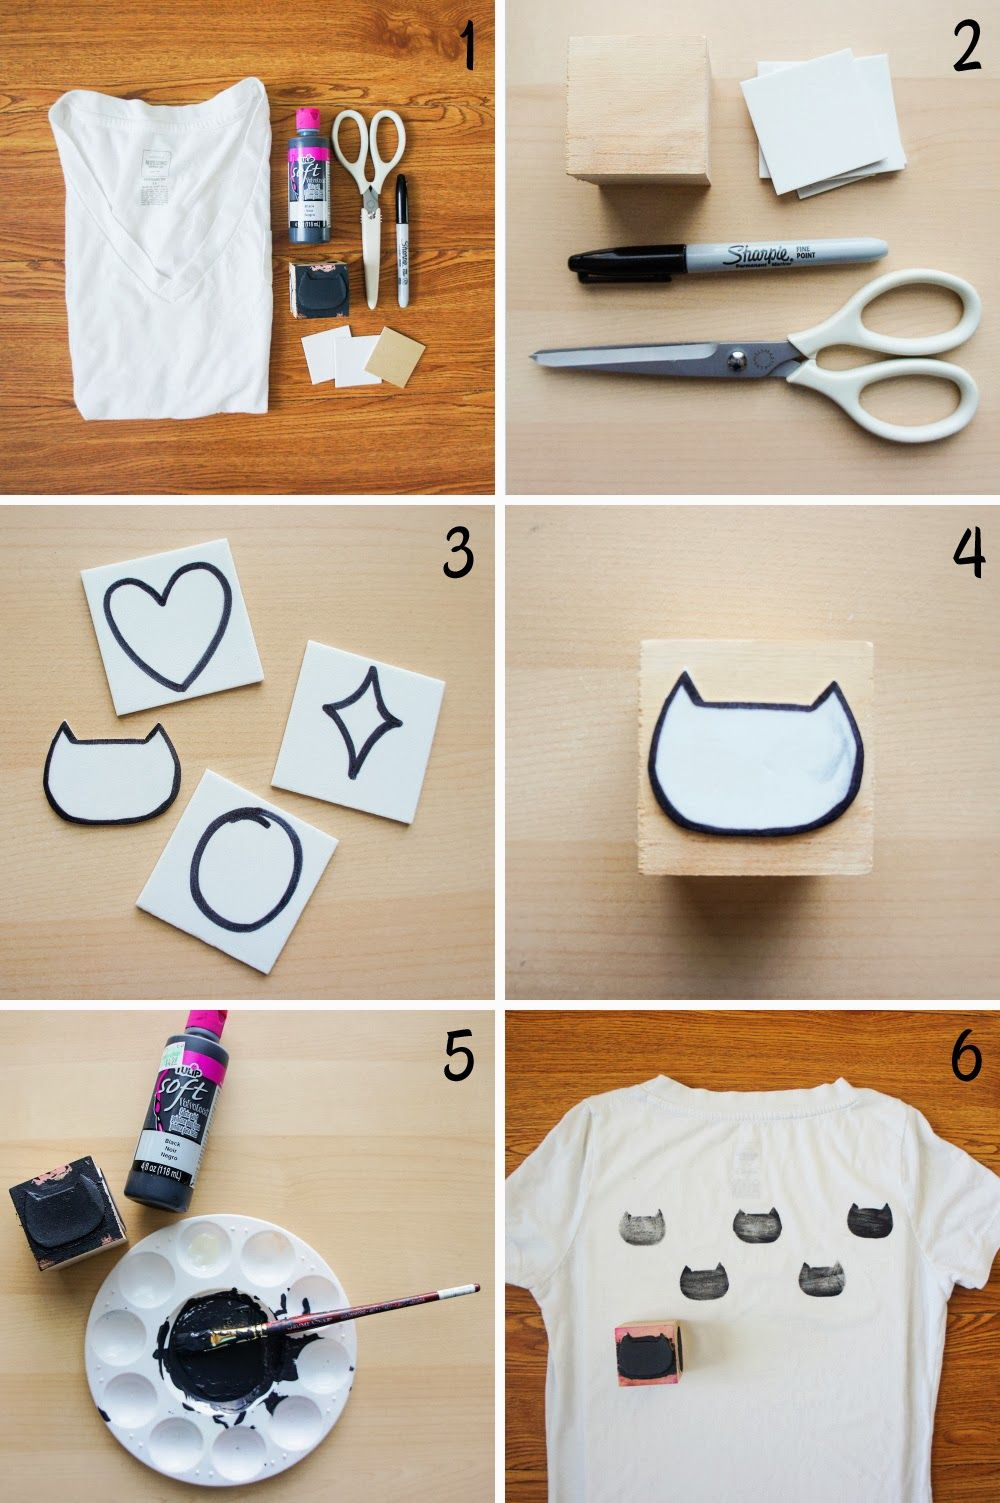 Design t shirt diy - Find This Pin And More On Sellos By Escupecoloresor Diy Stamp T Shirt